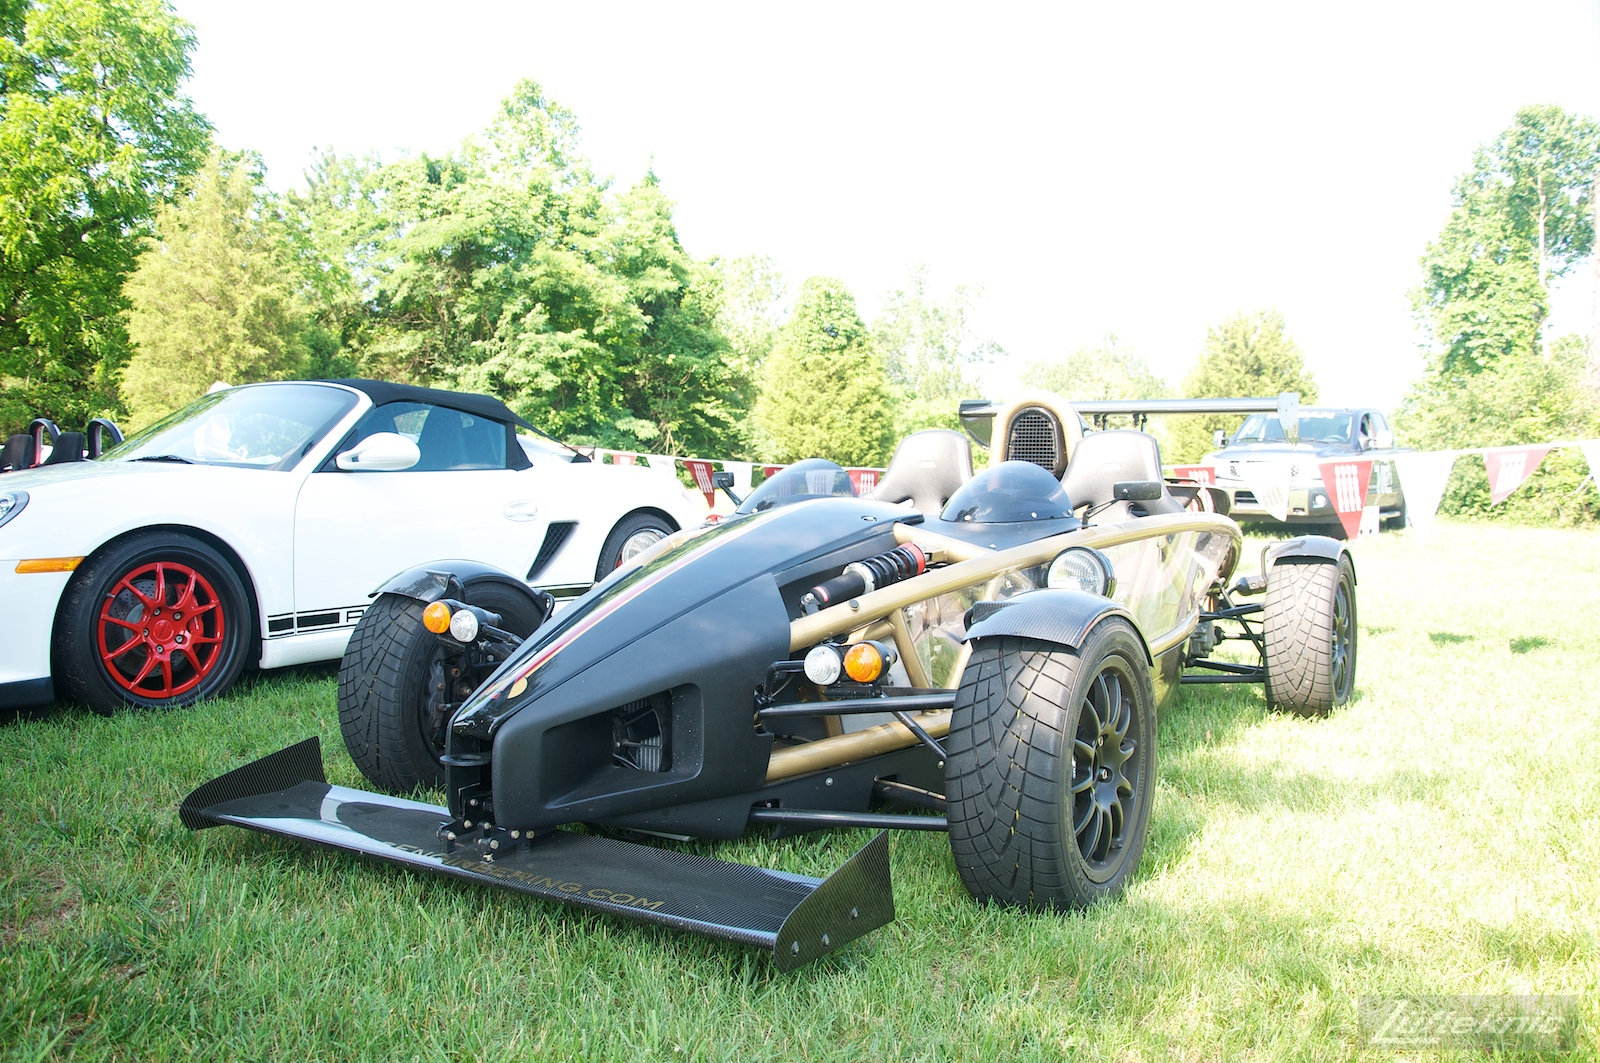 Ariel Atom at the Richmond Porsche Meet.